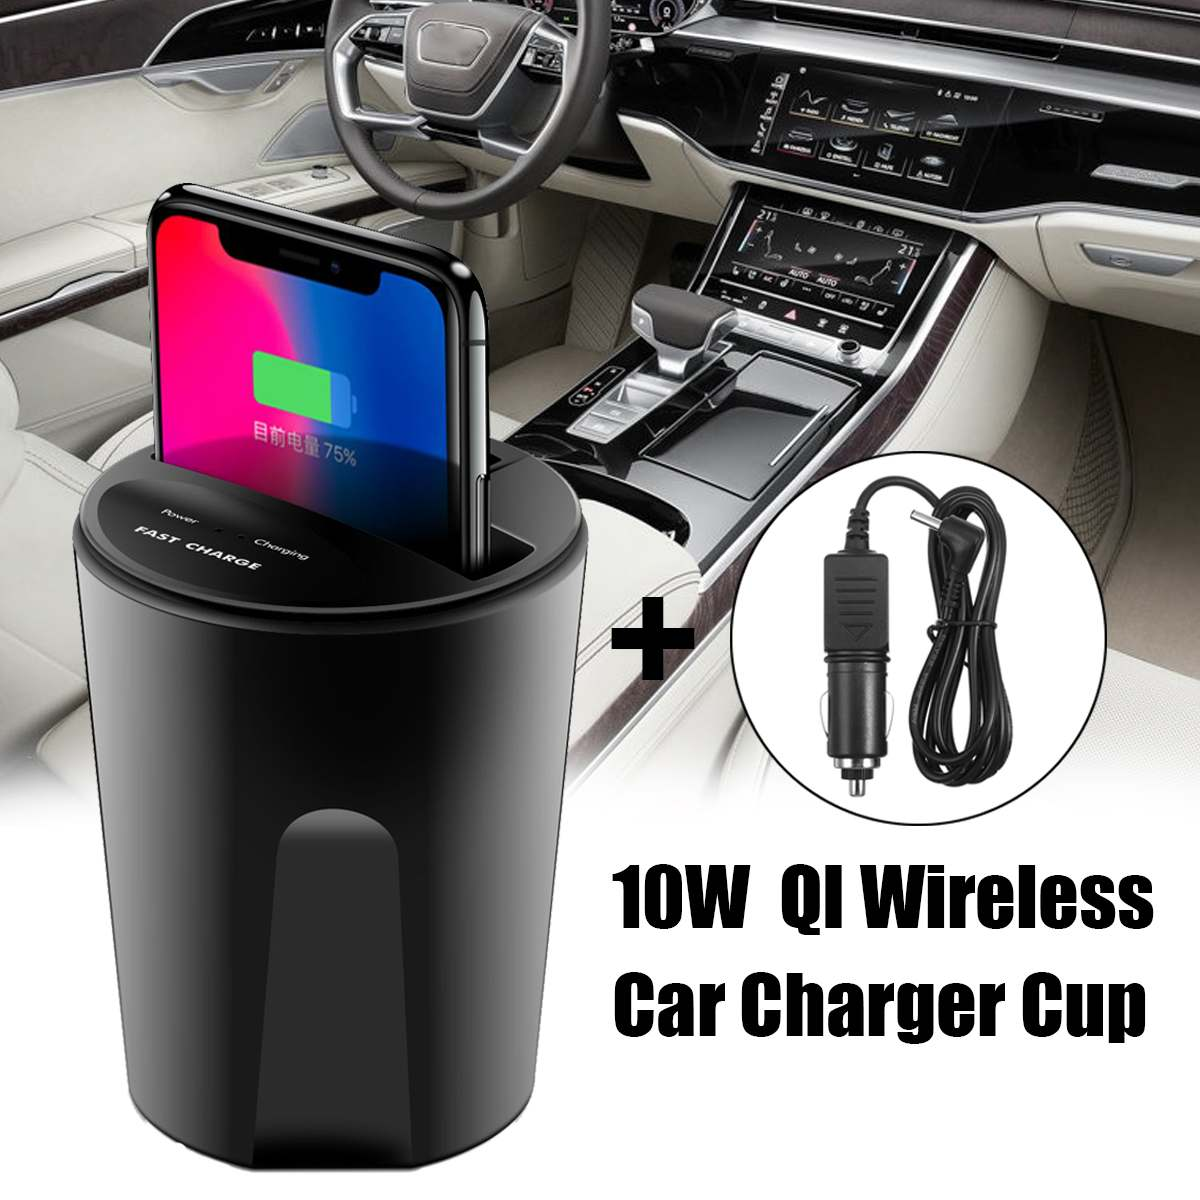 10W Qi Wireless Charger Holder Car Phone Charger Cup Fast Charging Car Charging Cup Phone Stand For Samsung For IPhone X 8